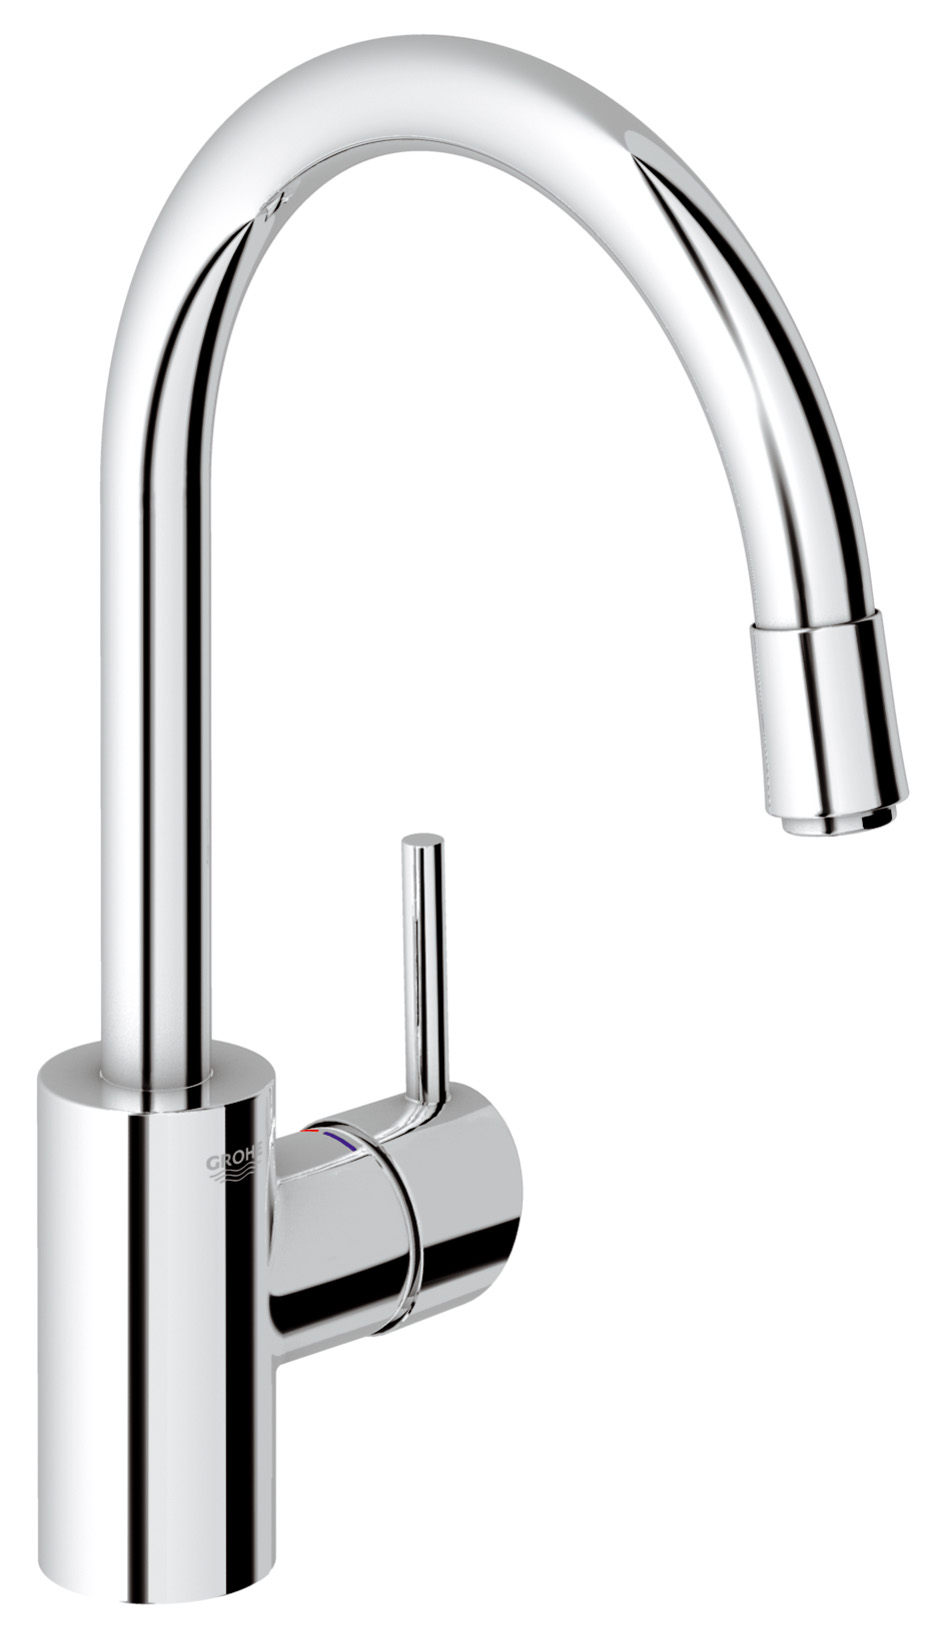 Grohe Concetto Kitchen Sink Mixer Tap Pull Out Spray